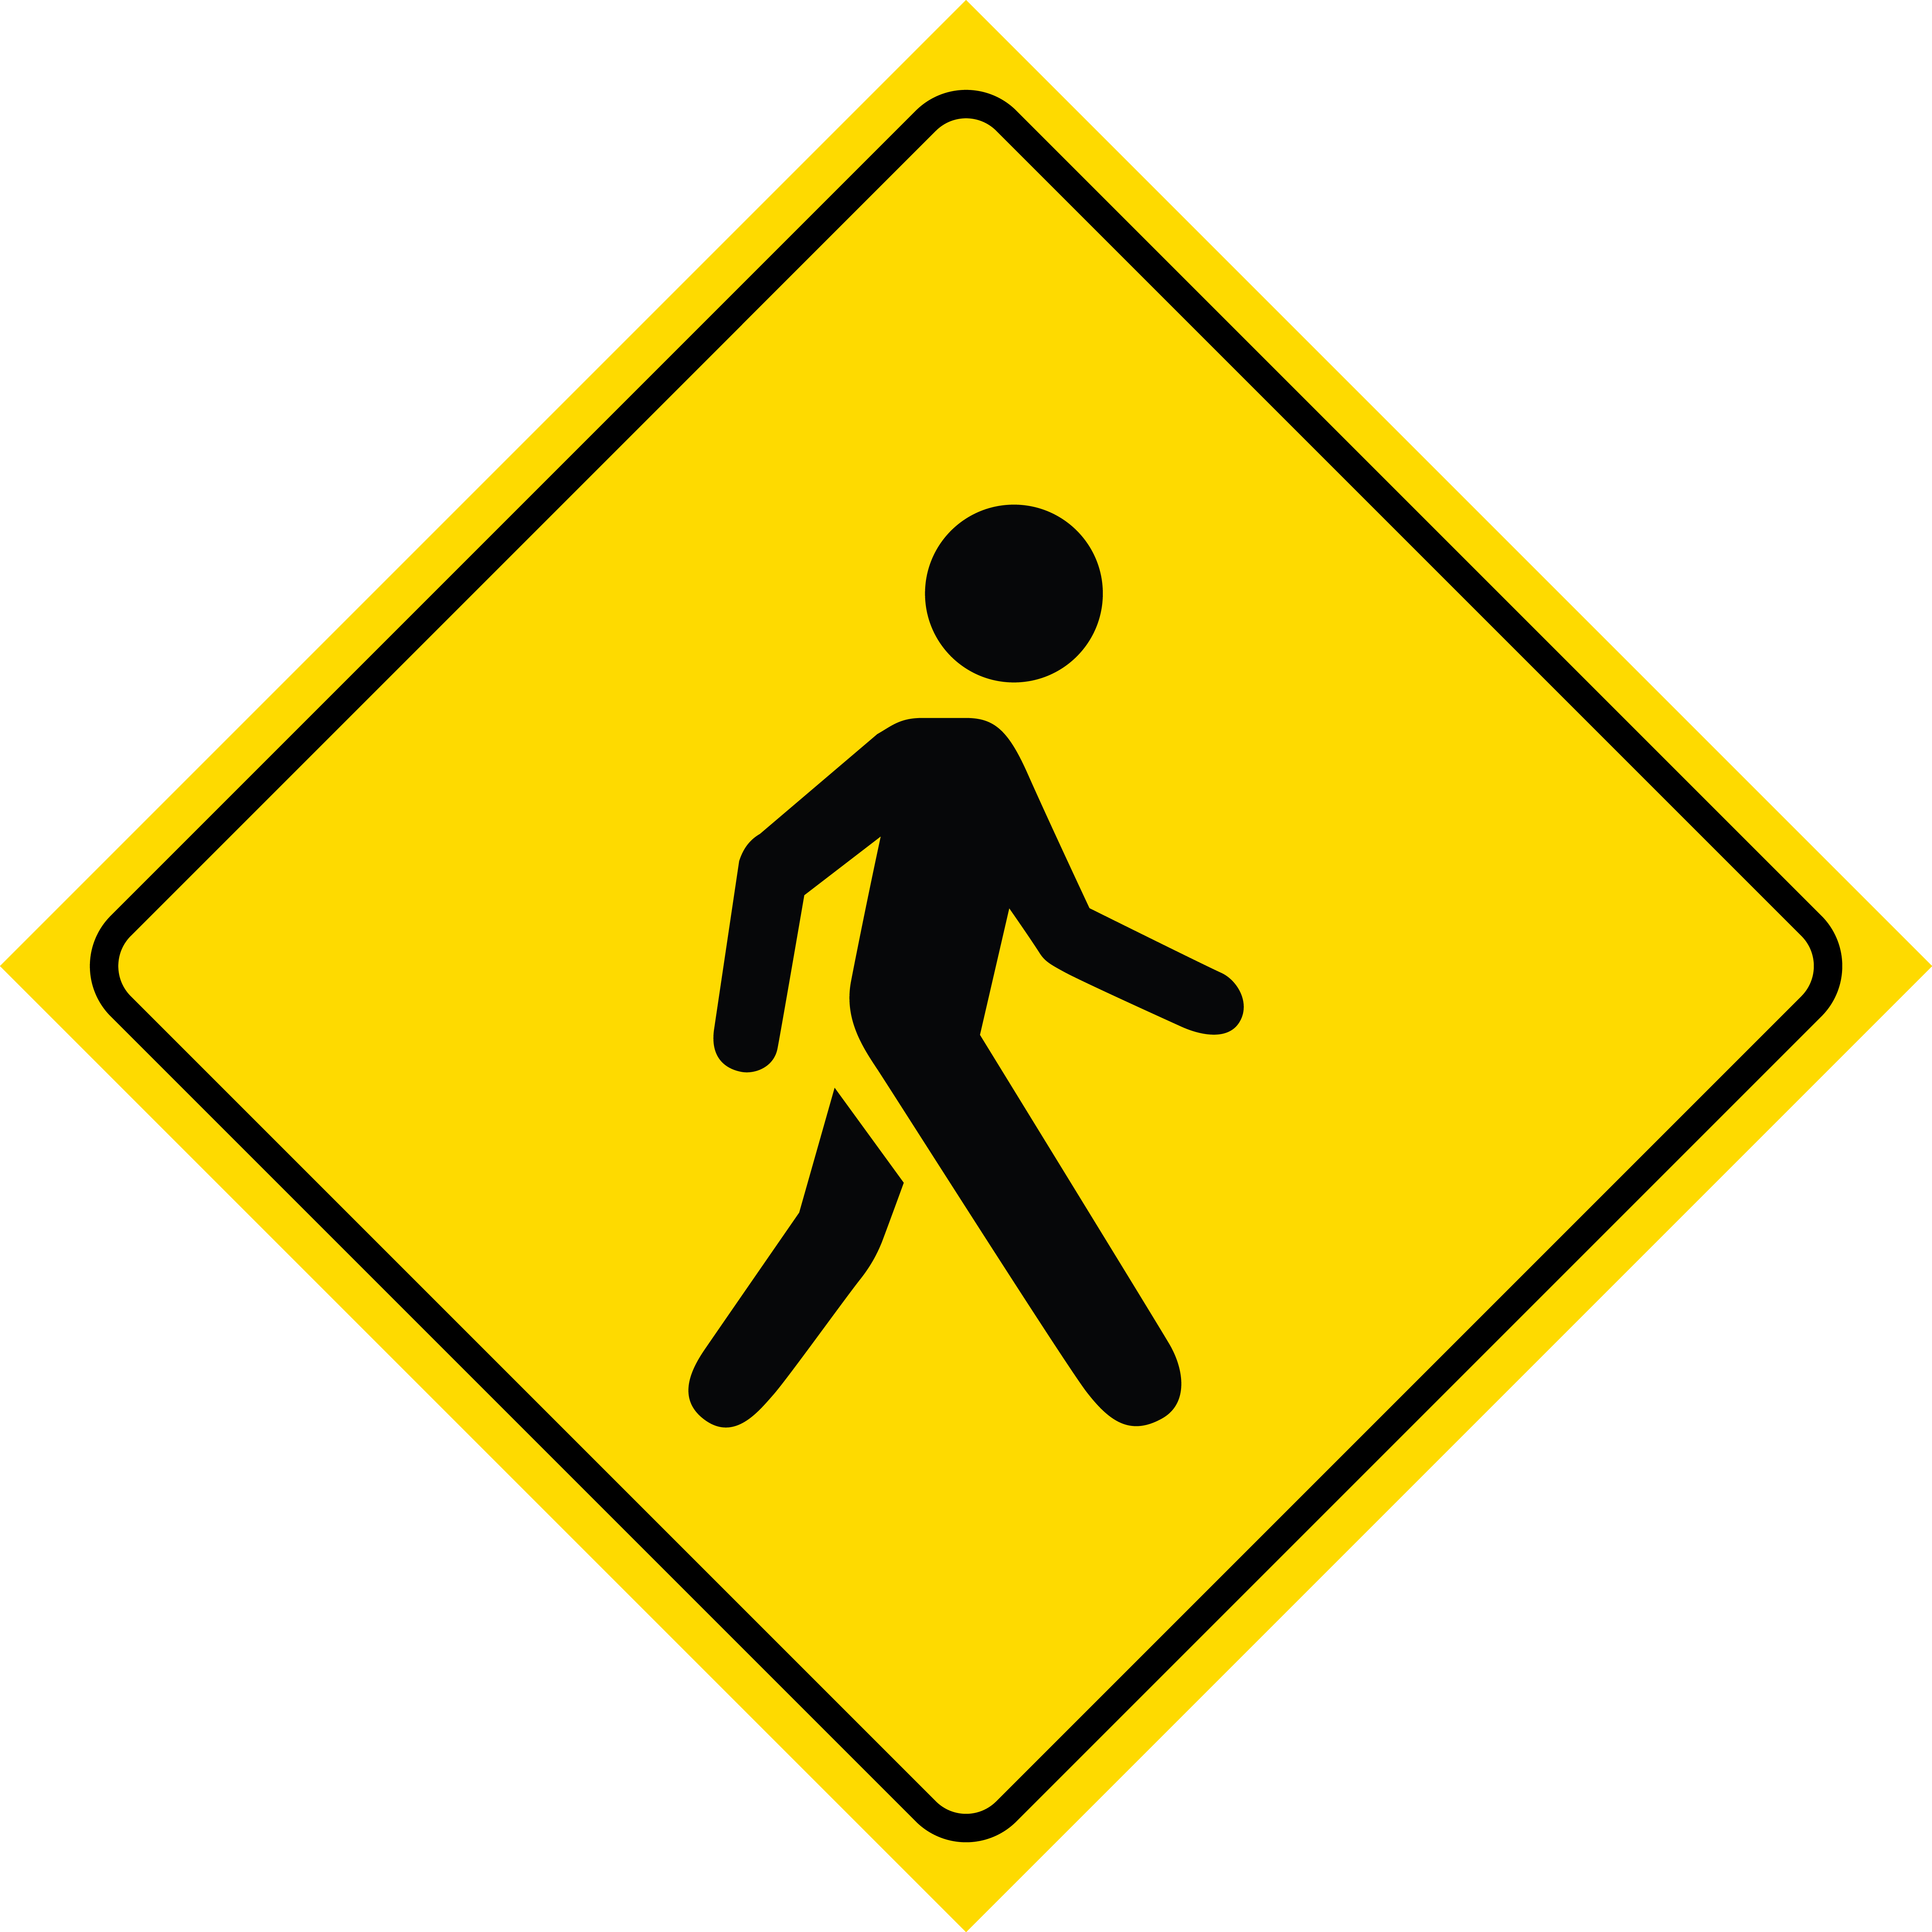 Aluminum Yellow Diamond Caution Walking Pedestrian Person Crossing Signs Metal Square Sign, 12x12